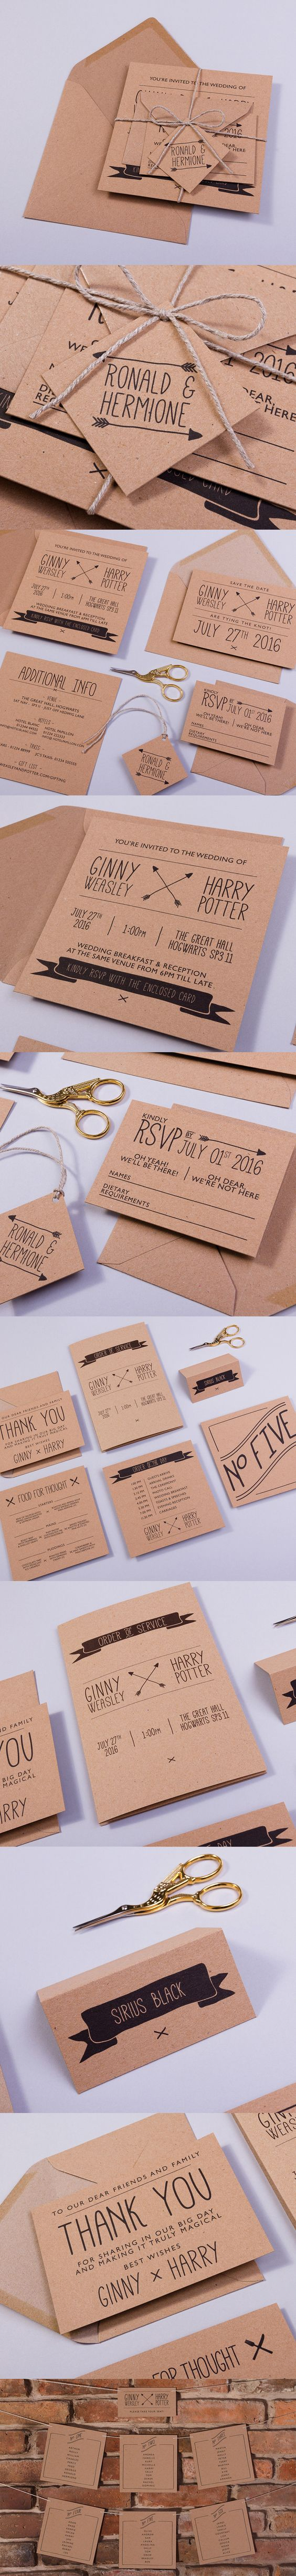 THE BURROW, loosely based on a Harry Potter theme, this wedding invitation and…